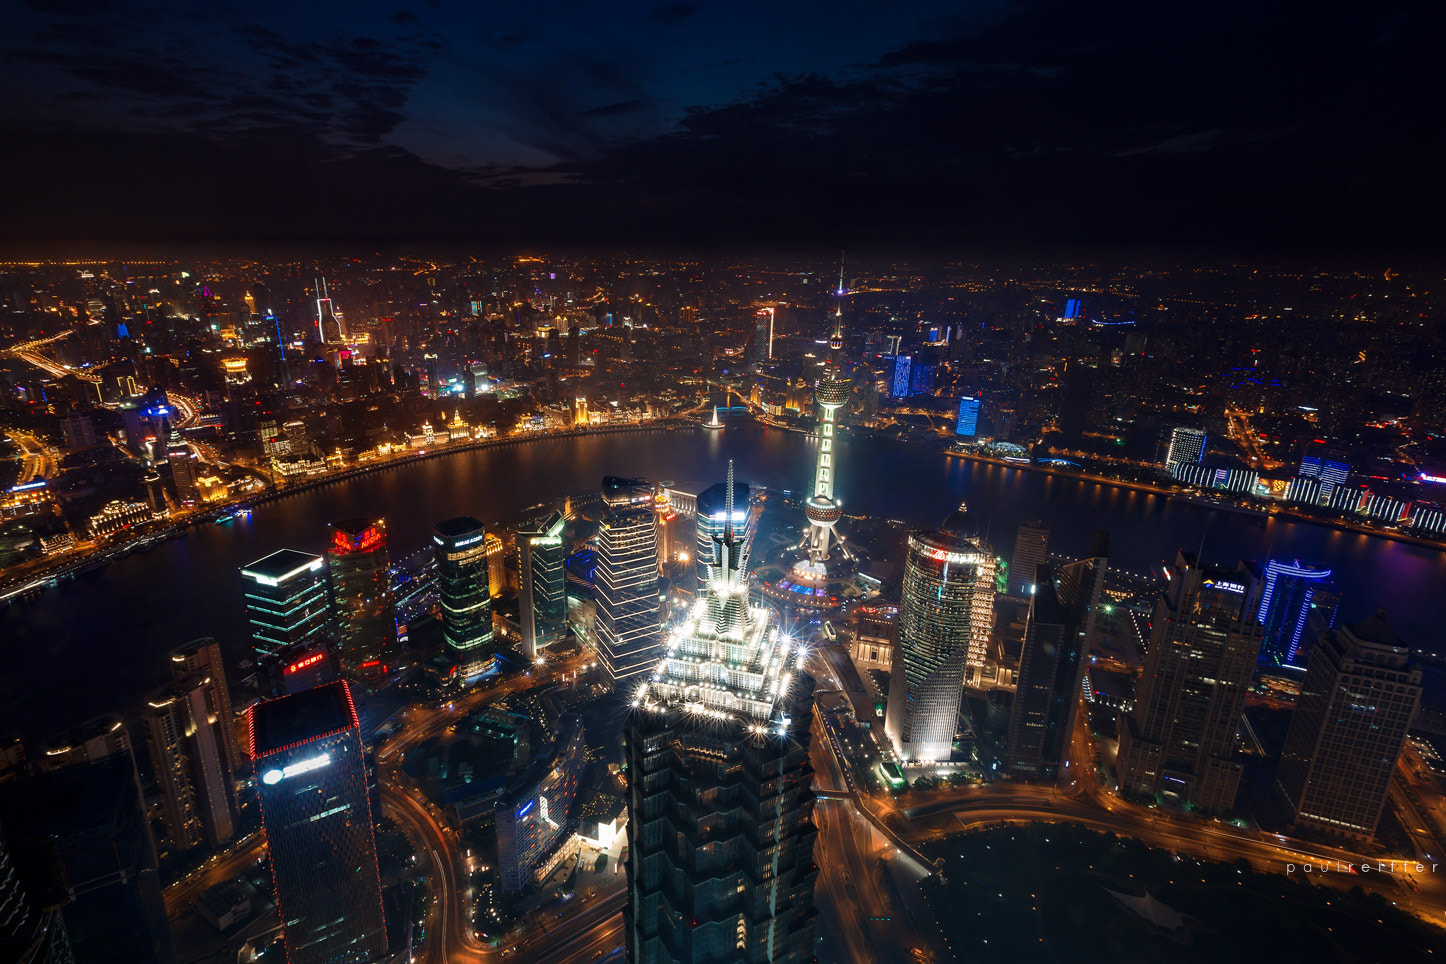 Photograph After Dark : Shanghai's Skyscrapers at Night by Paul Reiffer on 500px